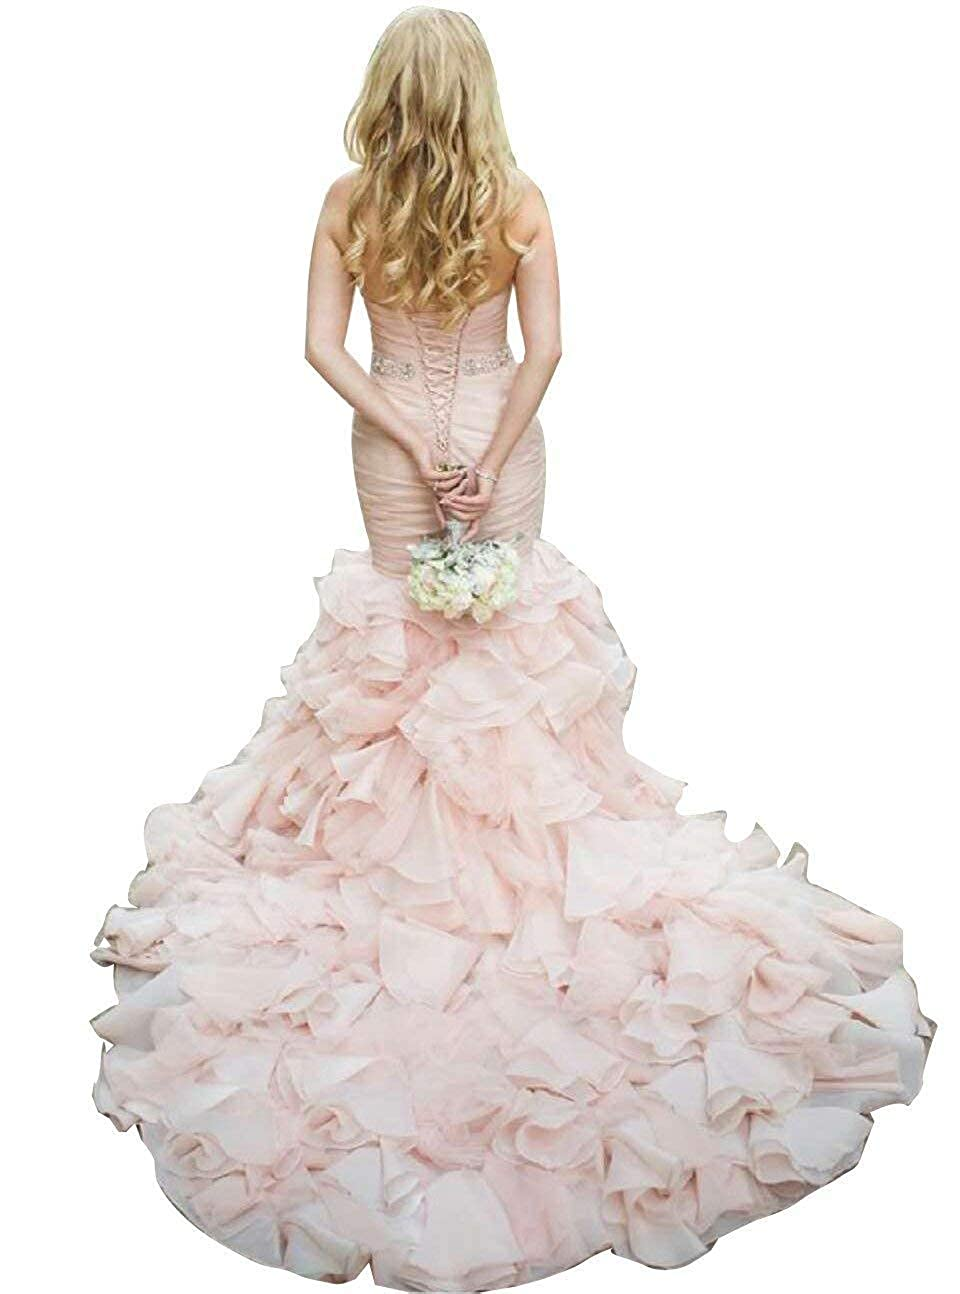 bluesh RYANTH Womens Mermaid Wedding Dresses Ruffles Beaded Sweetheart Bridal Gown with Train R39